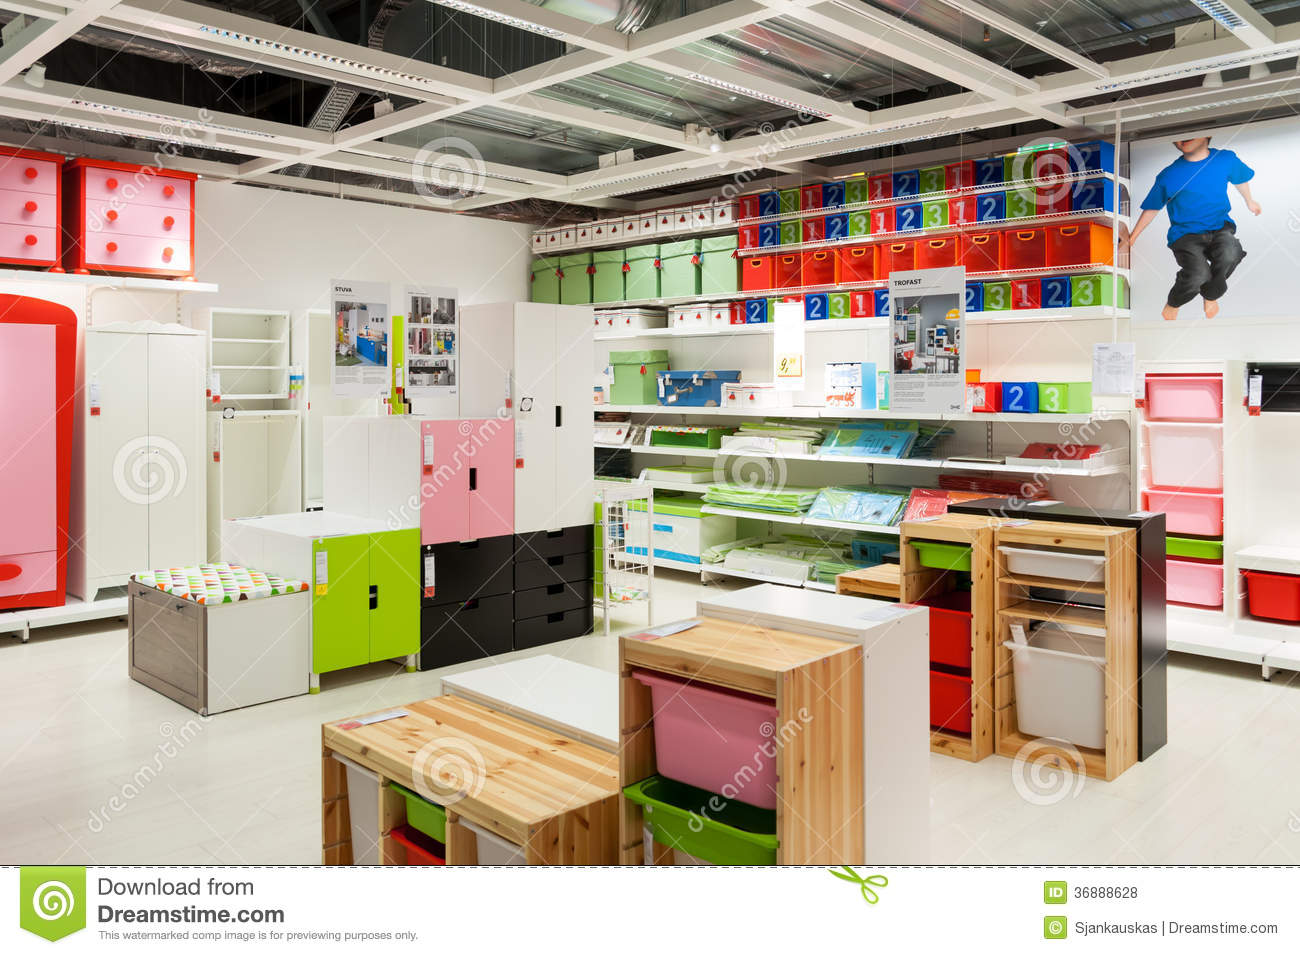 Le magasin de meubles d 39 ikea badine la zone photo stock Magasin de meuble